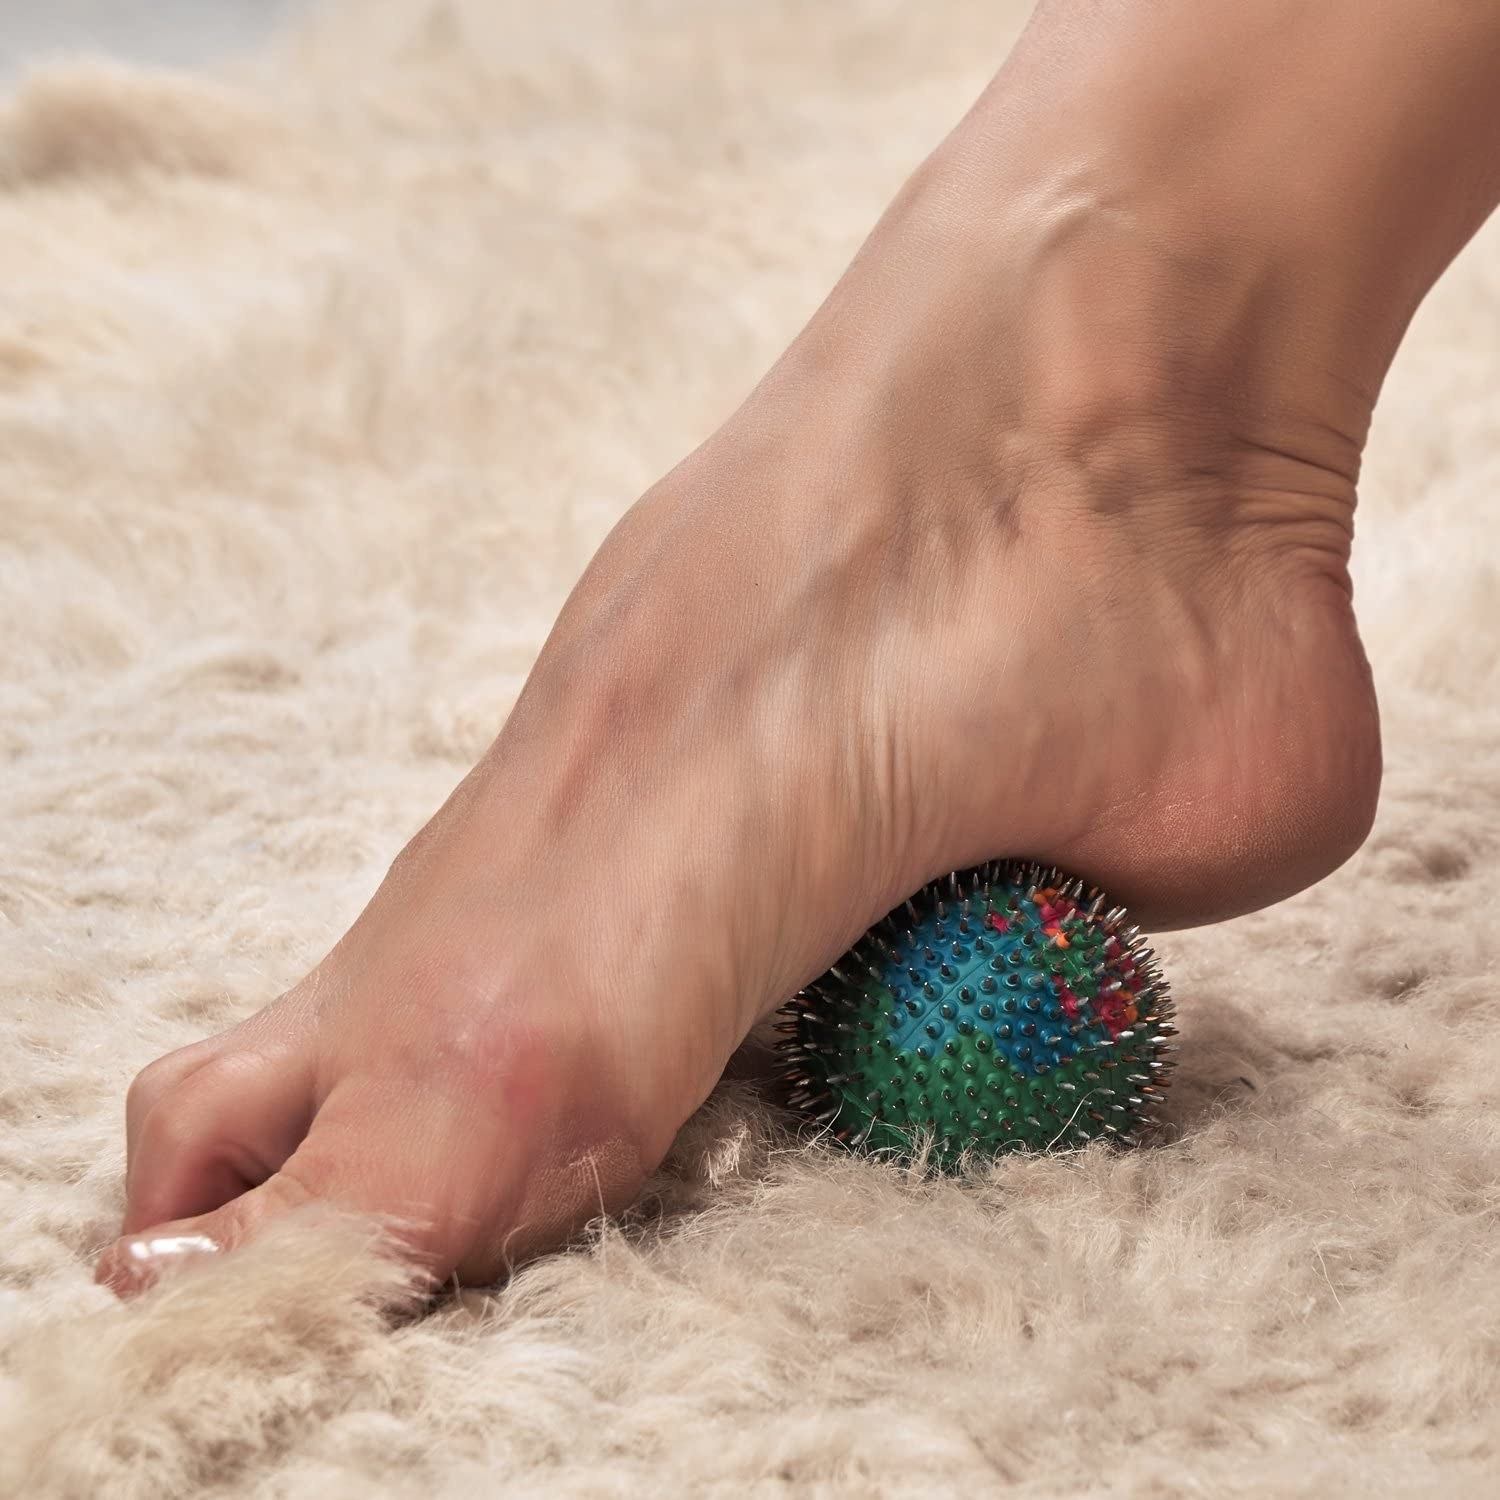 An acupuncture ball under a persons foot